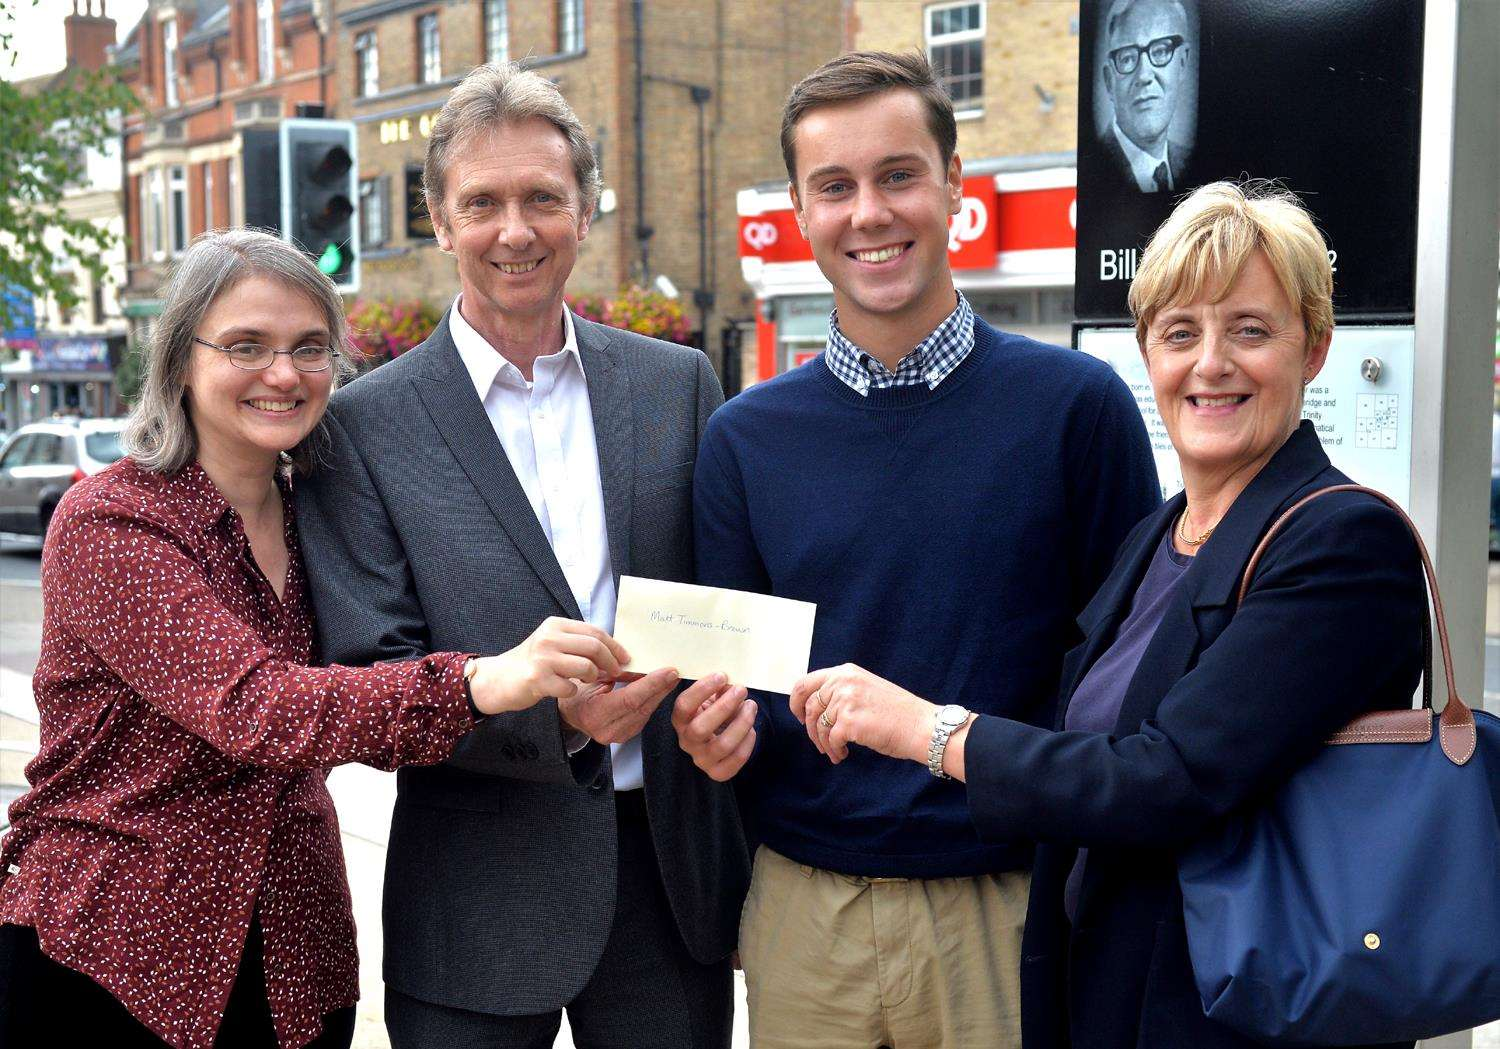 Matt Timmons-Brown receives a cheque for £1,000 from Bill Tutte scholarship committee members Rachel Wood, Michael Jeffreys and Alison Hayes